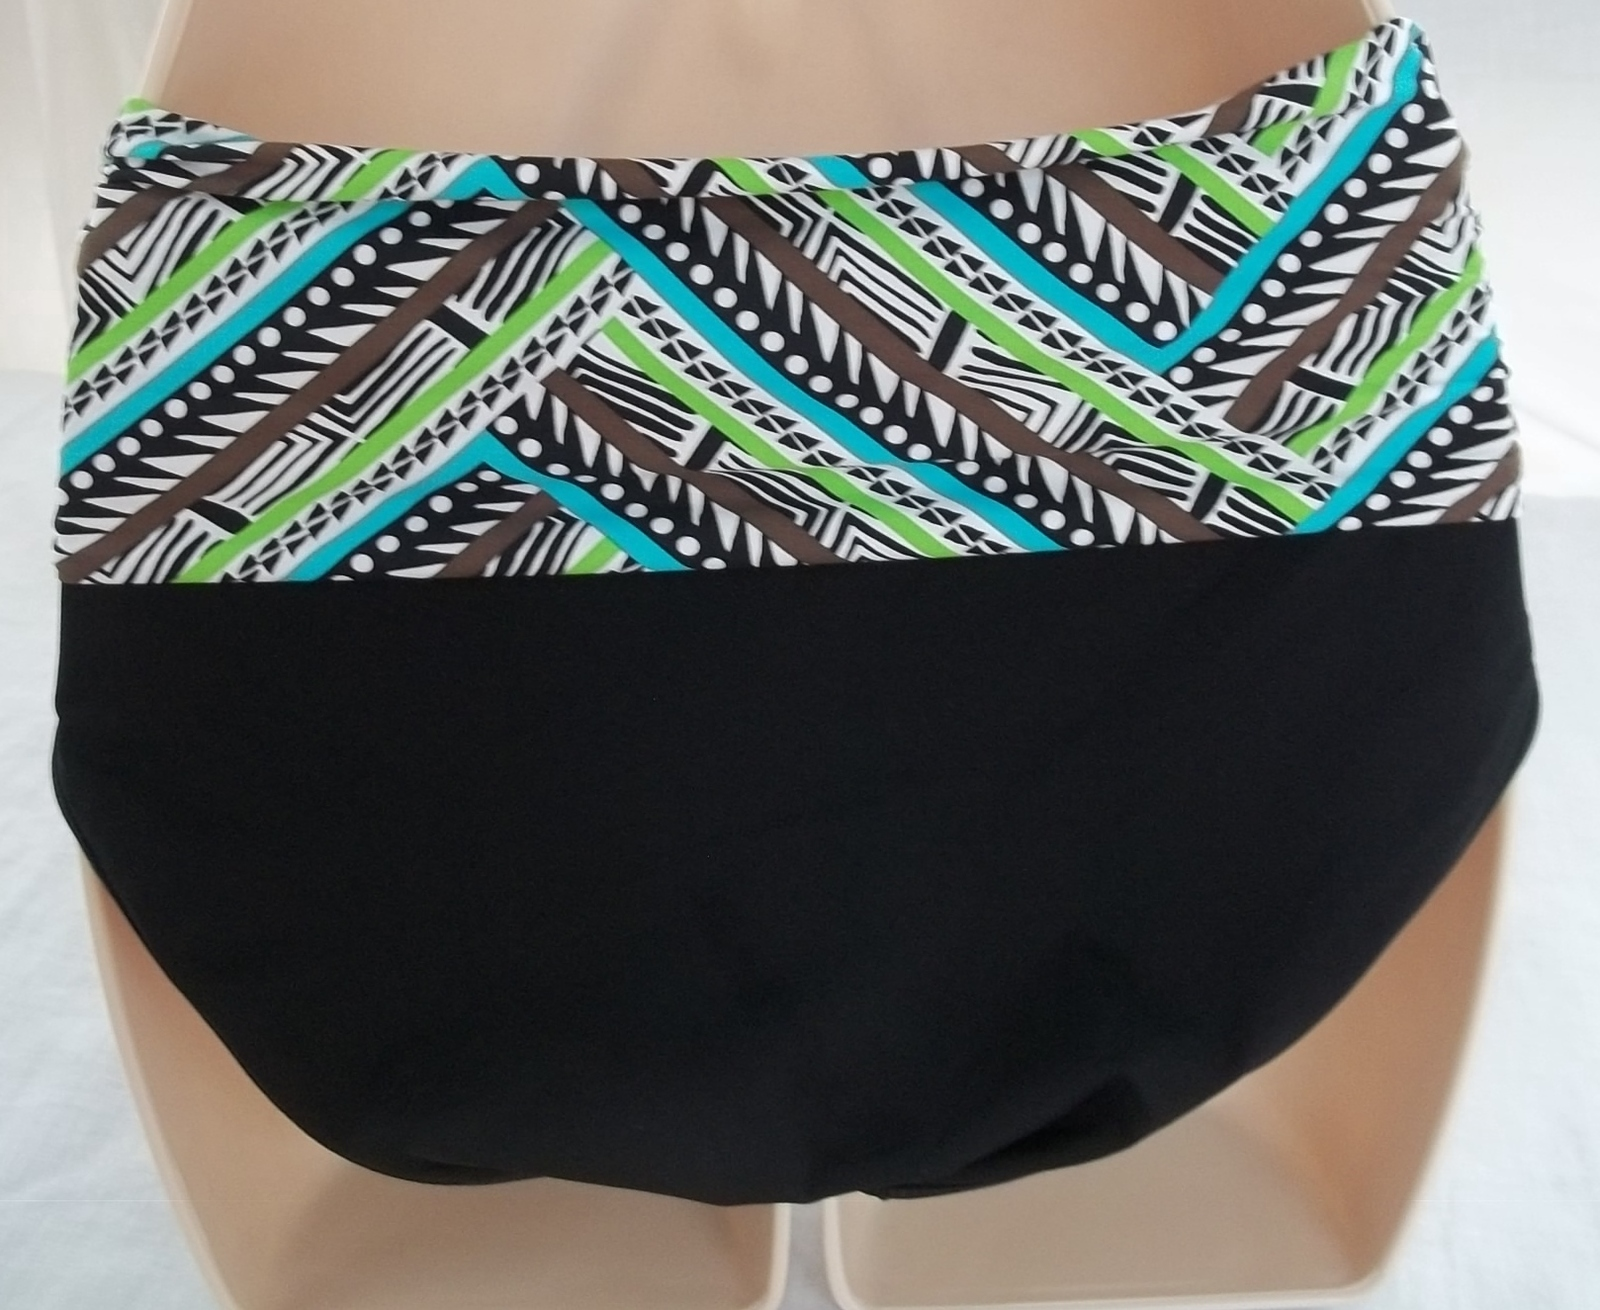 COCO REEF TANKINI & REVERSIBLE HIGH WAISTED/ROLL OVER BOTTOM,SIZE 32C/SMALL